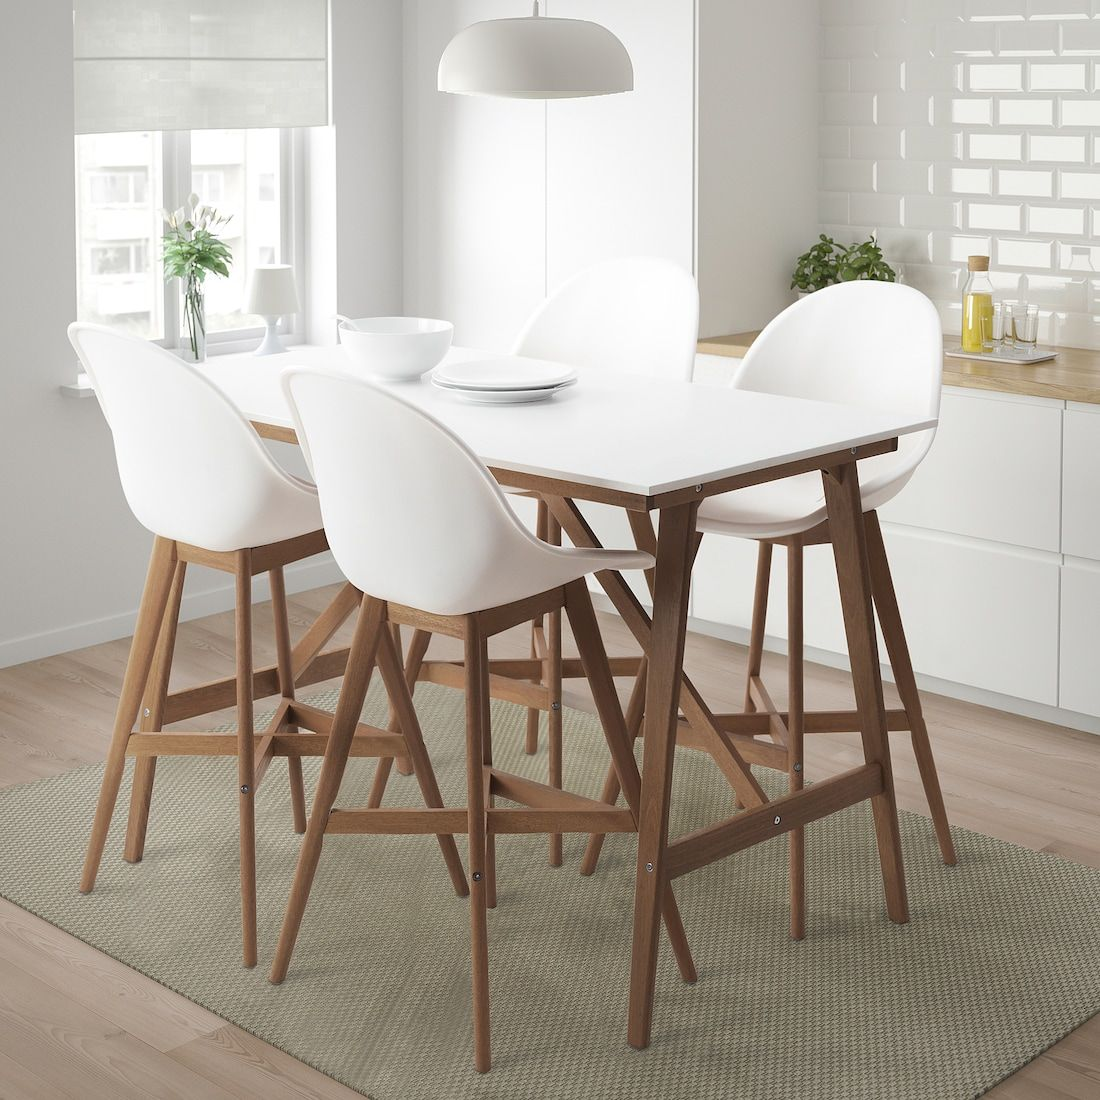 Fanbyn Bar Table And 4 Stools